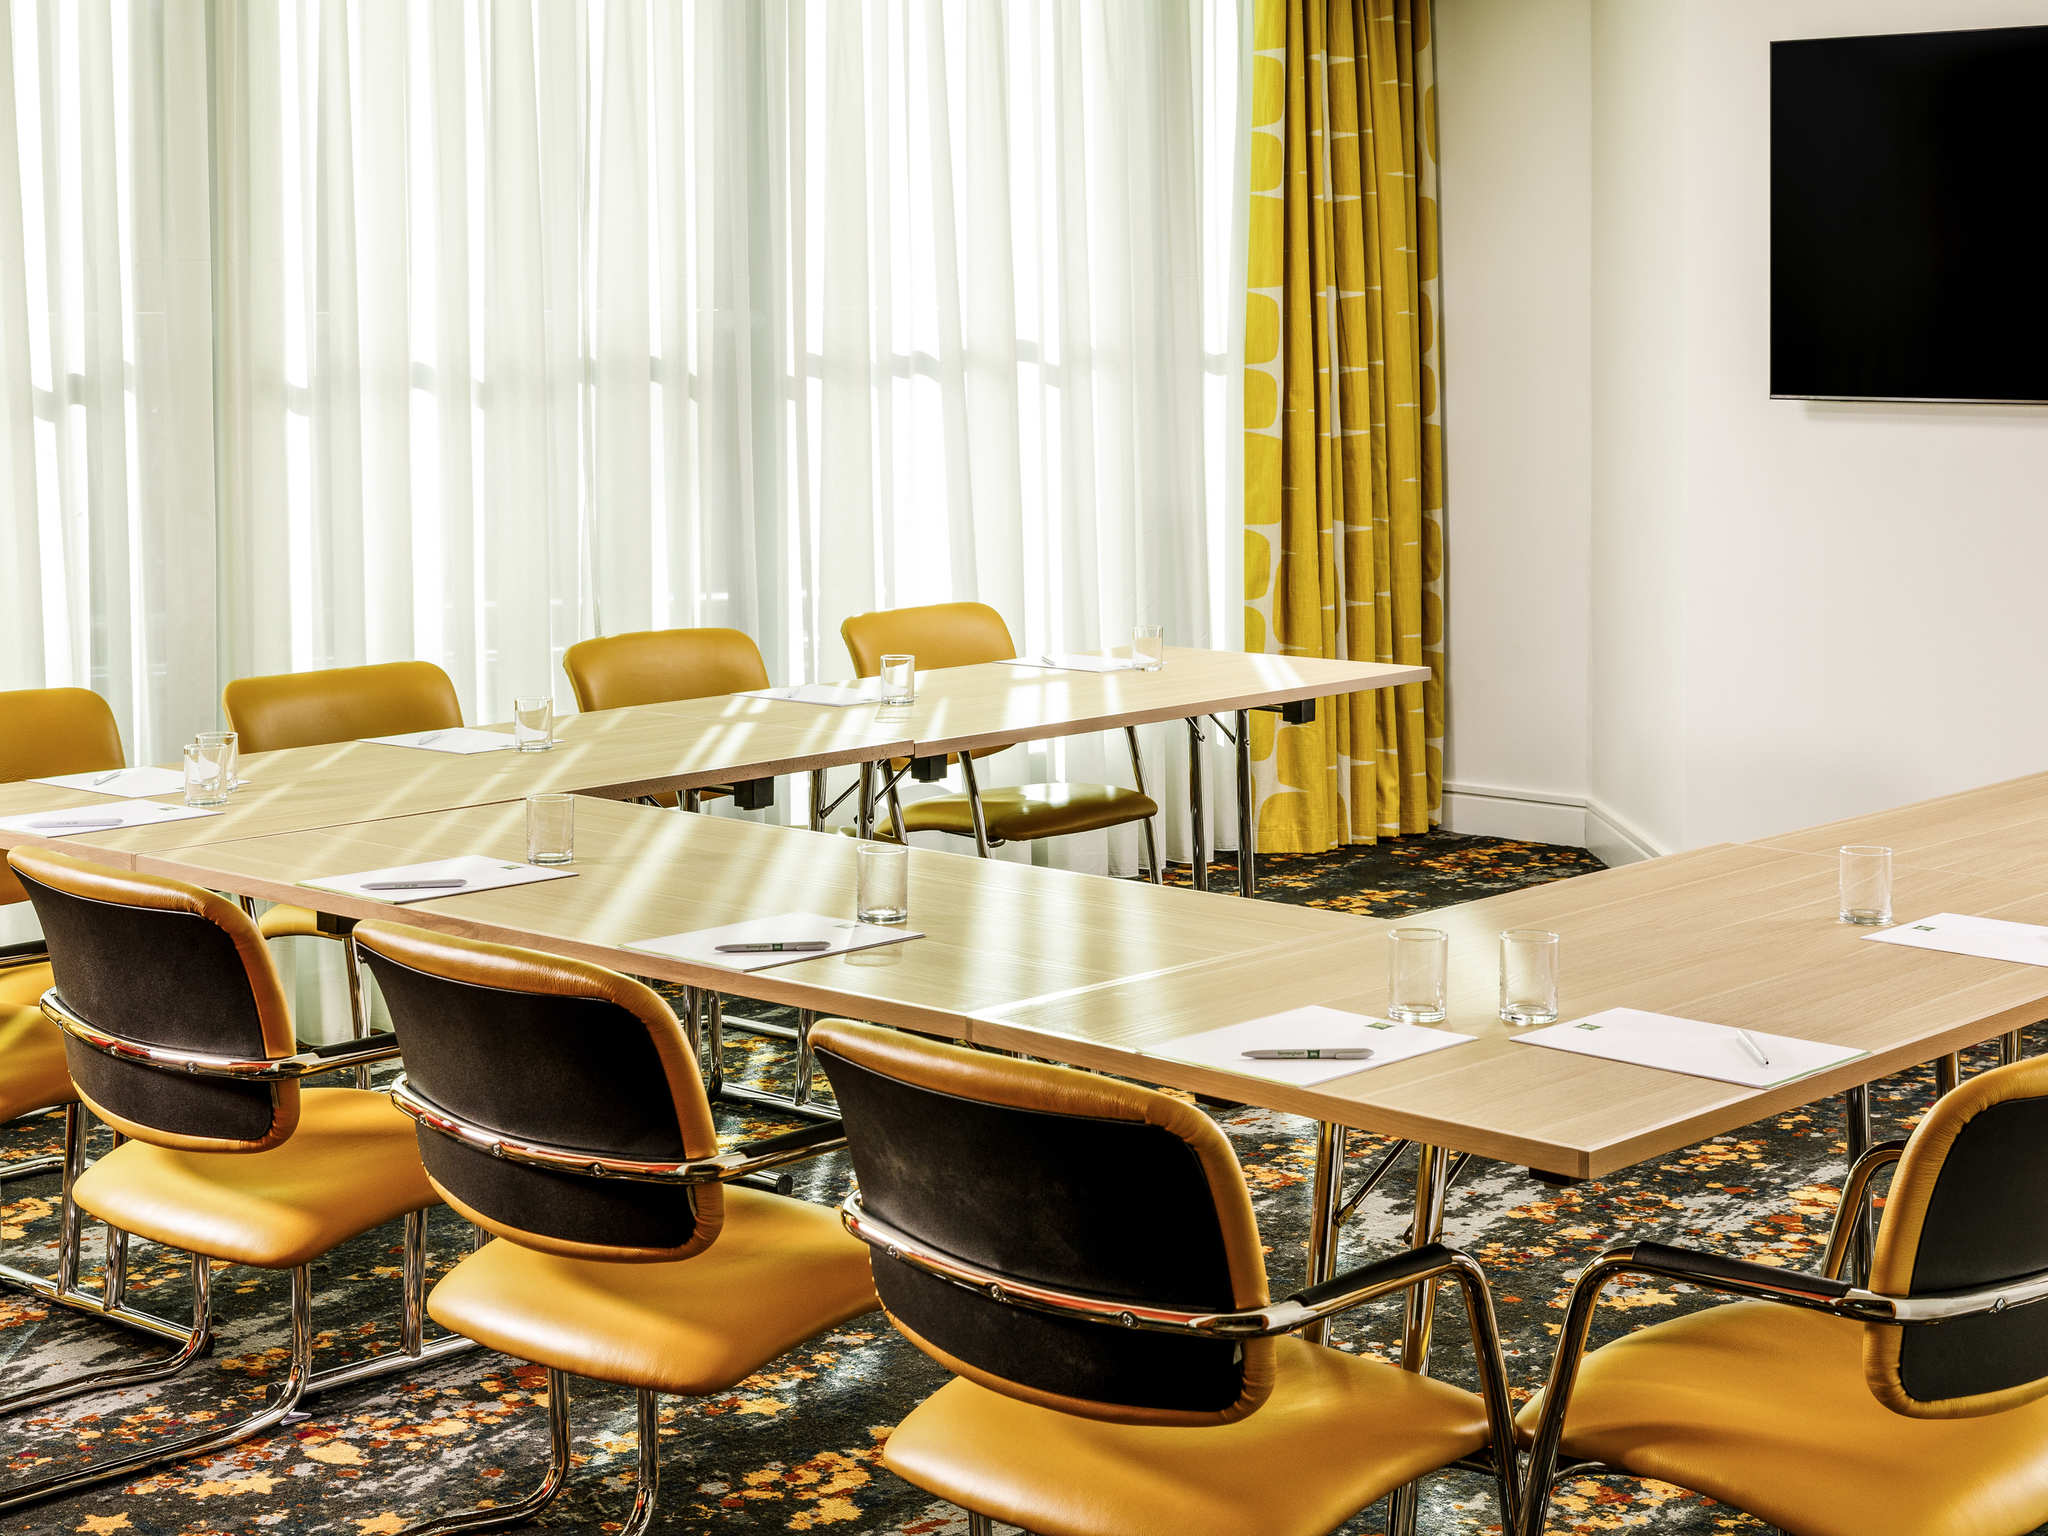 Ibis Styles Birmingham Centre Stylish Hotel In Network Topology Diagram Guesthouse Wifi Meetings And Events